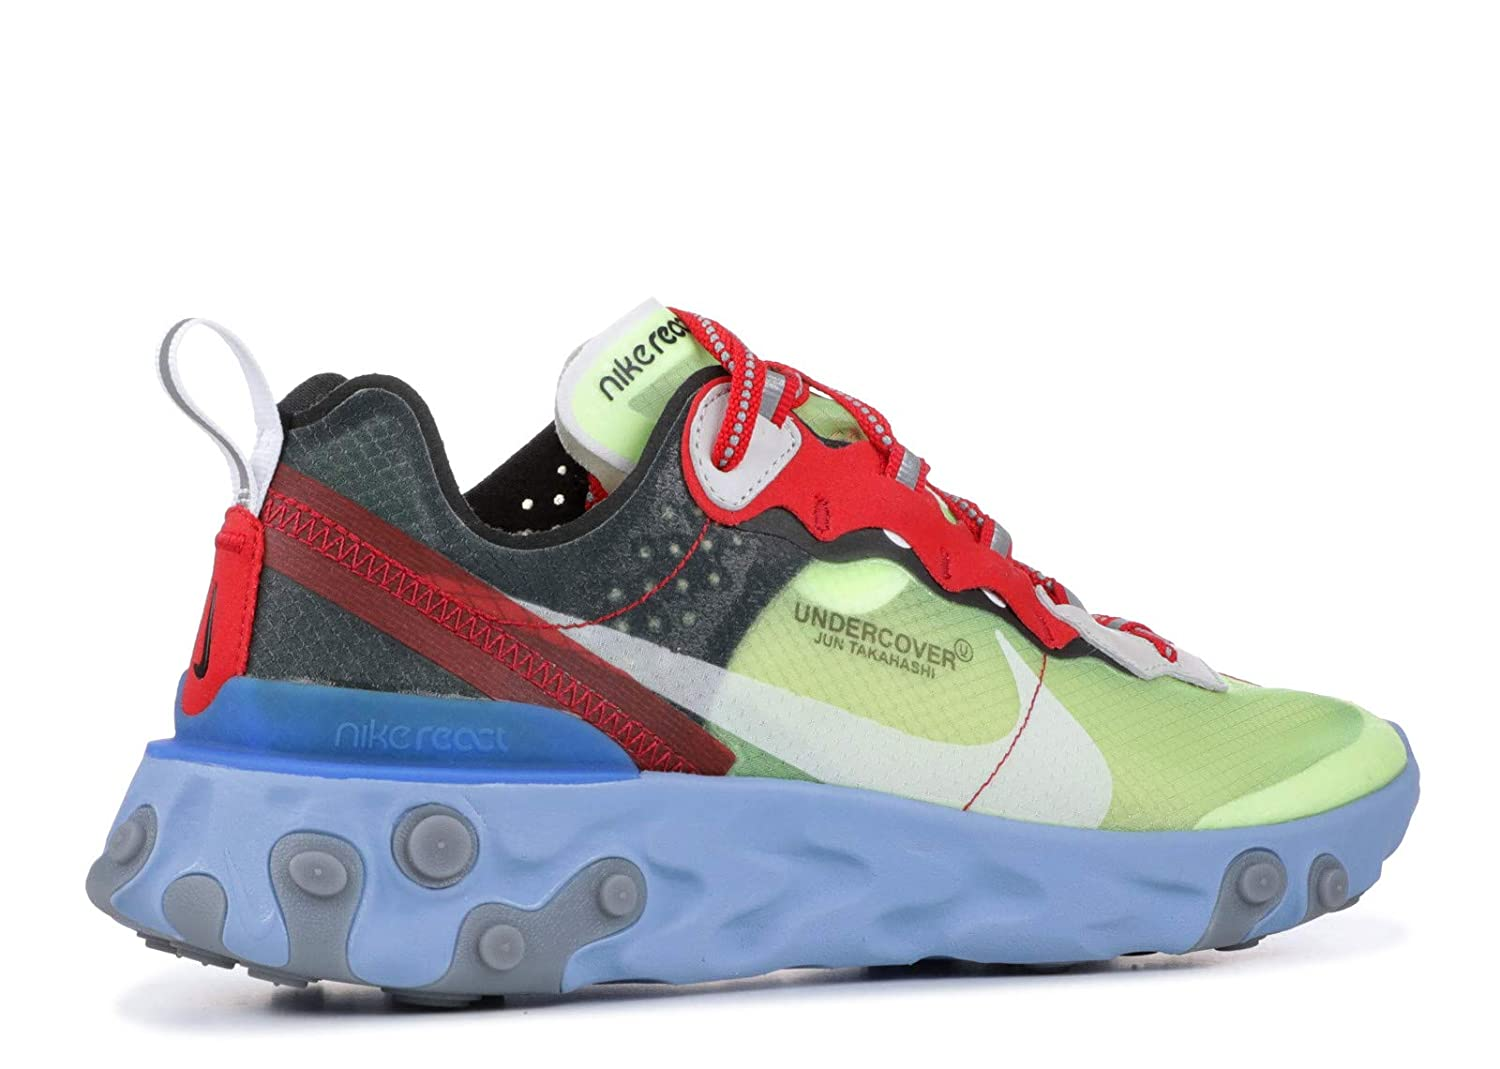 premium selection 0ff9a 7bc25 Amazon.com   Nike React Element 87 Undercover - US 7   Fashion Sneakers